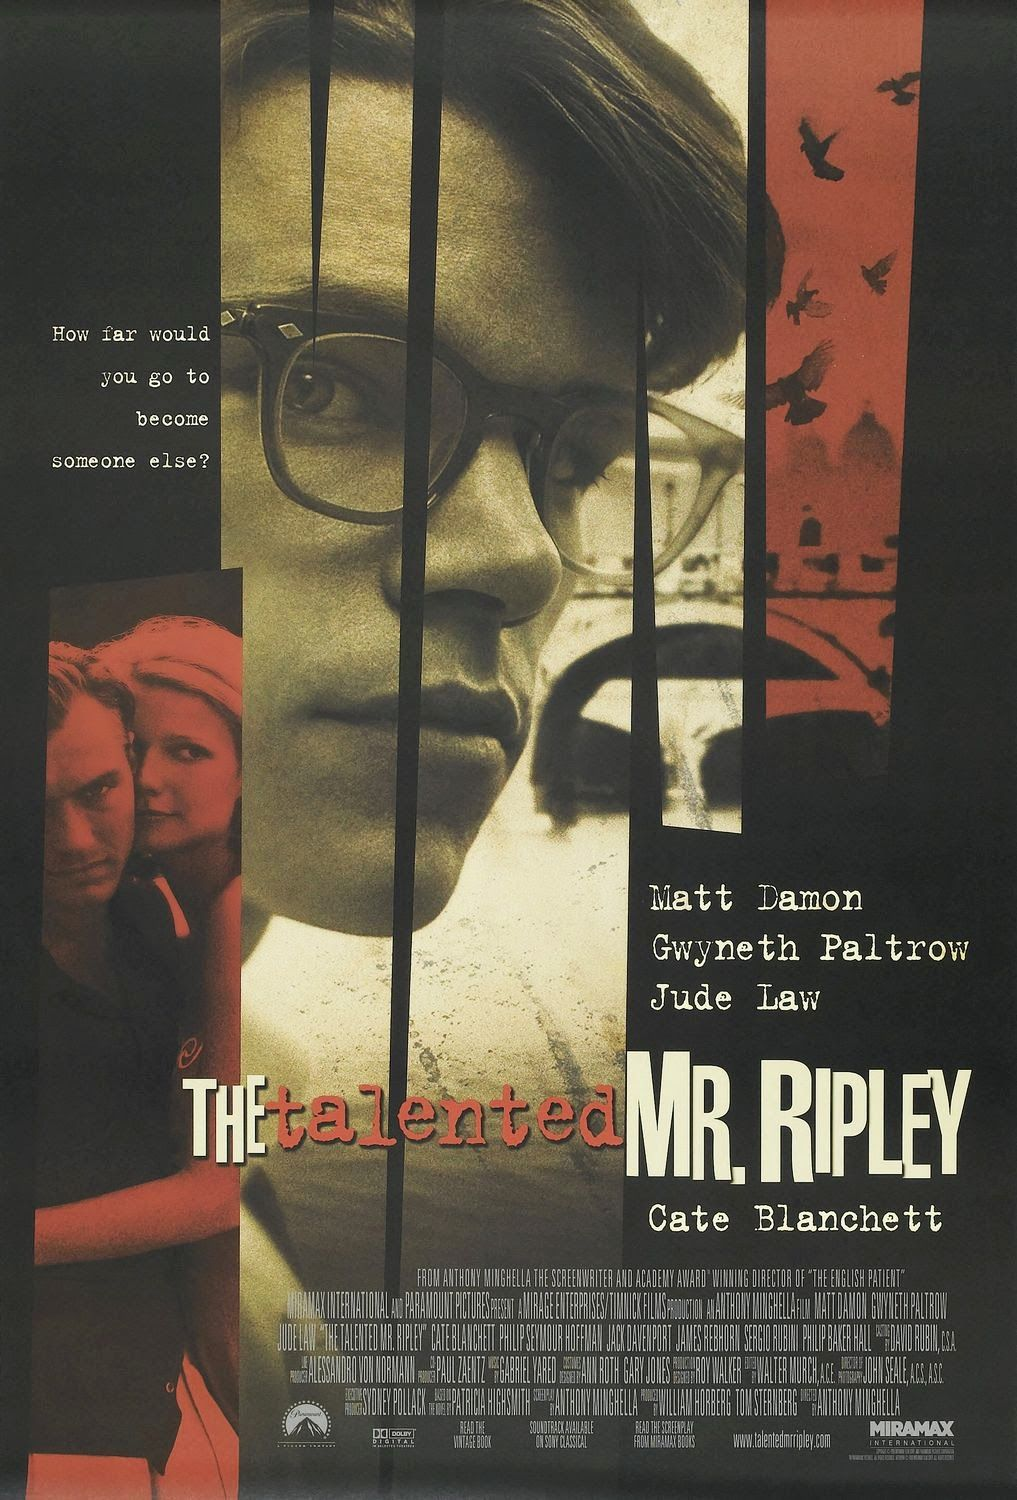 where was the talented mr ripley filmed